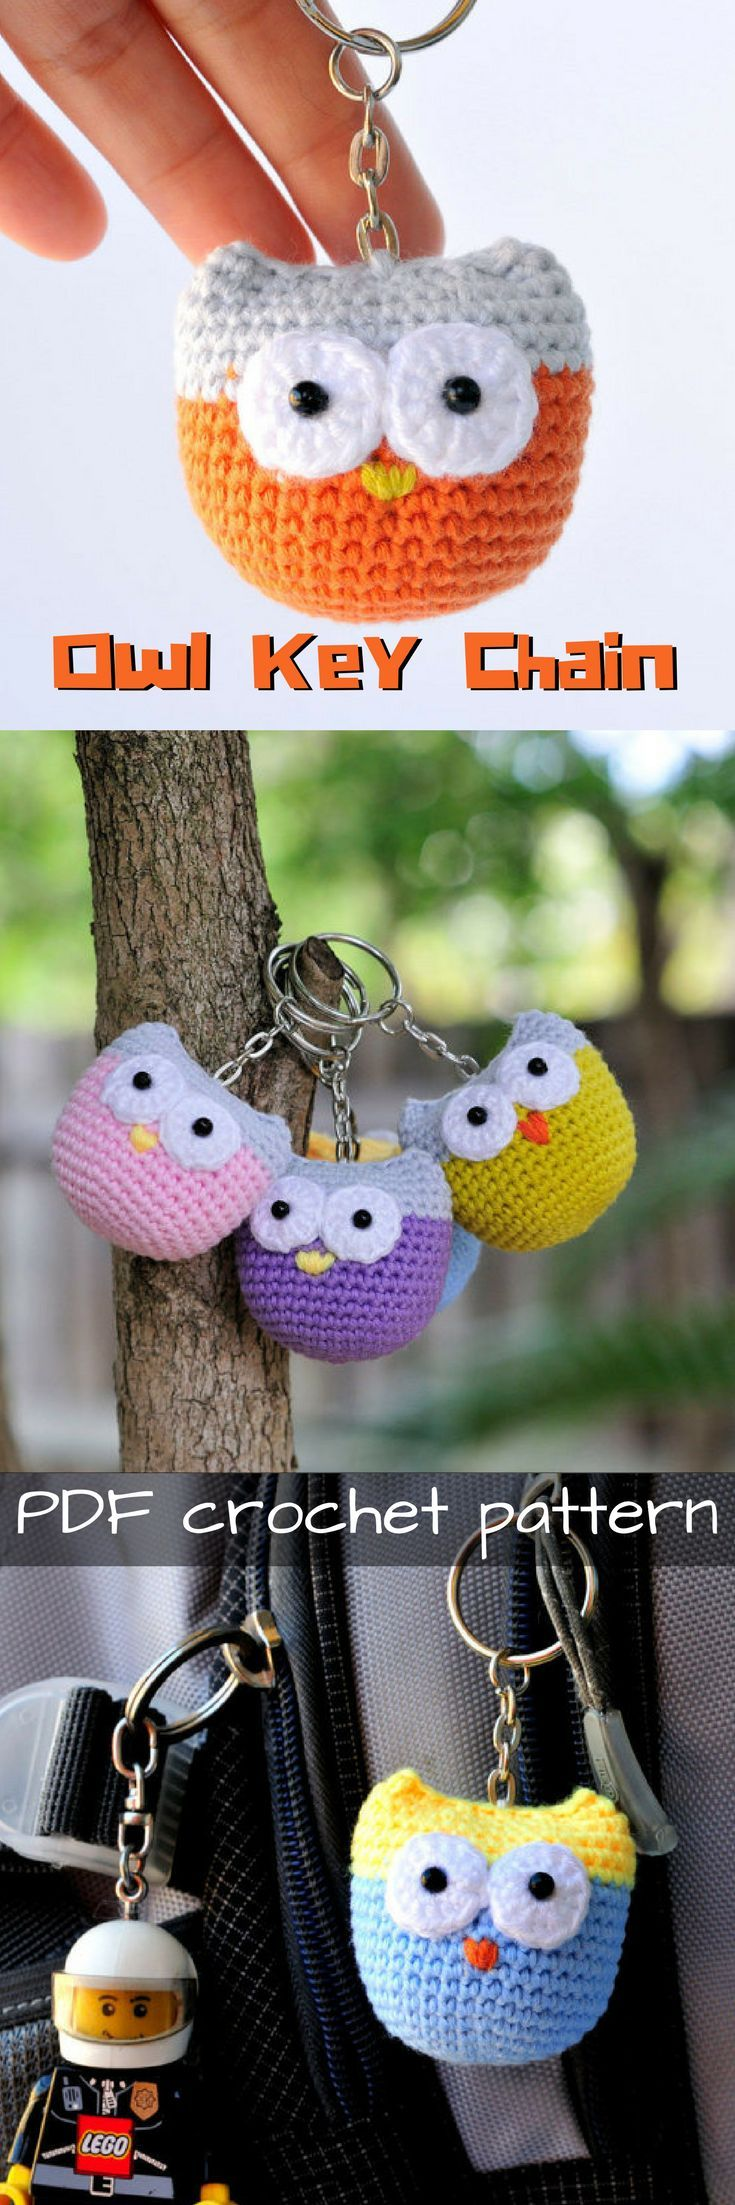 Adorable owl key chain crochet pattern! Cute little pattern for under $2.00! Great for a zipper pull or for a  backpack. #etsy #ad #amigurumi #crochet #pattern #pdf #download